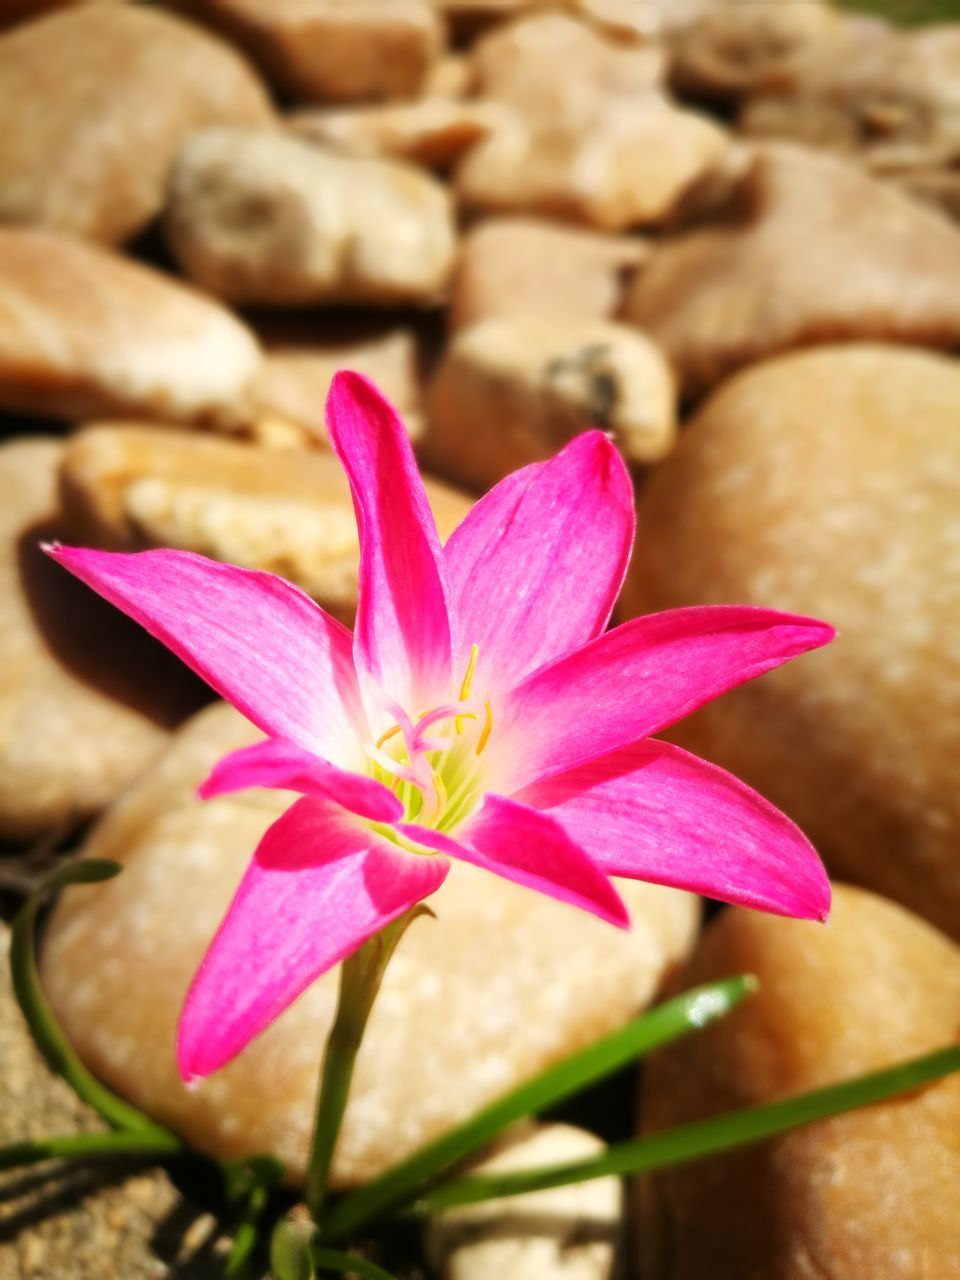 flower, pink color, petal, freshness, nature, fragility, beauty in nature, close-up, no people, growth, flower head, day, outdoors, crocus